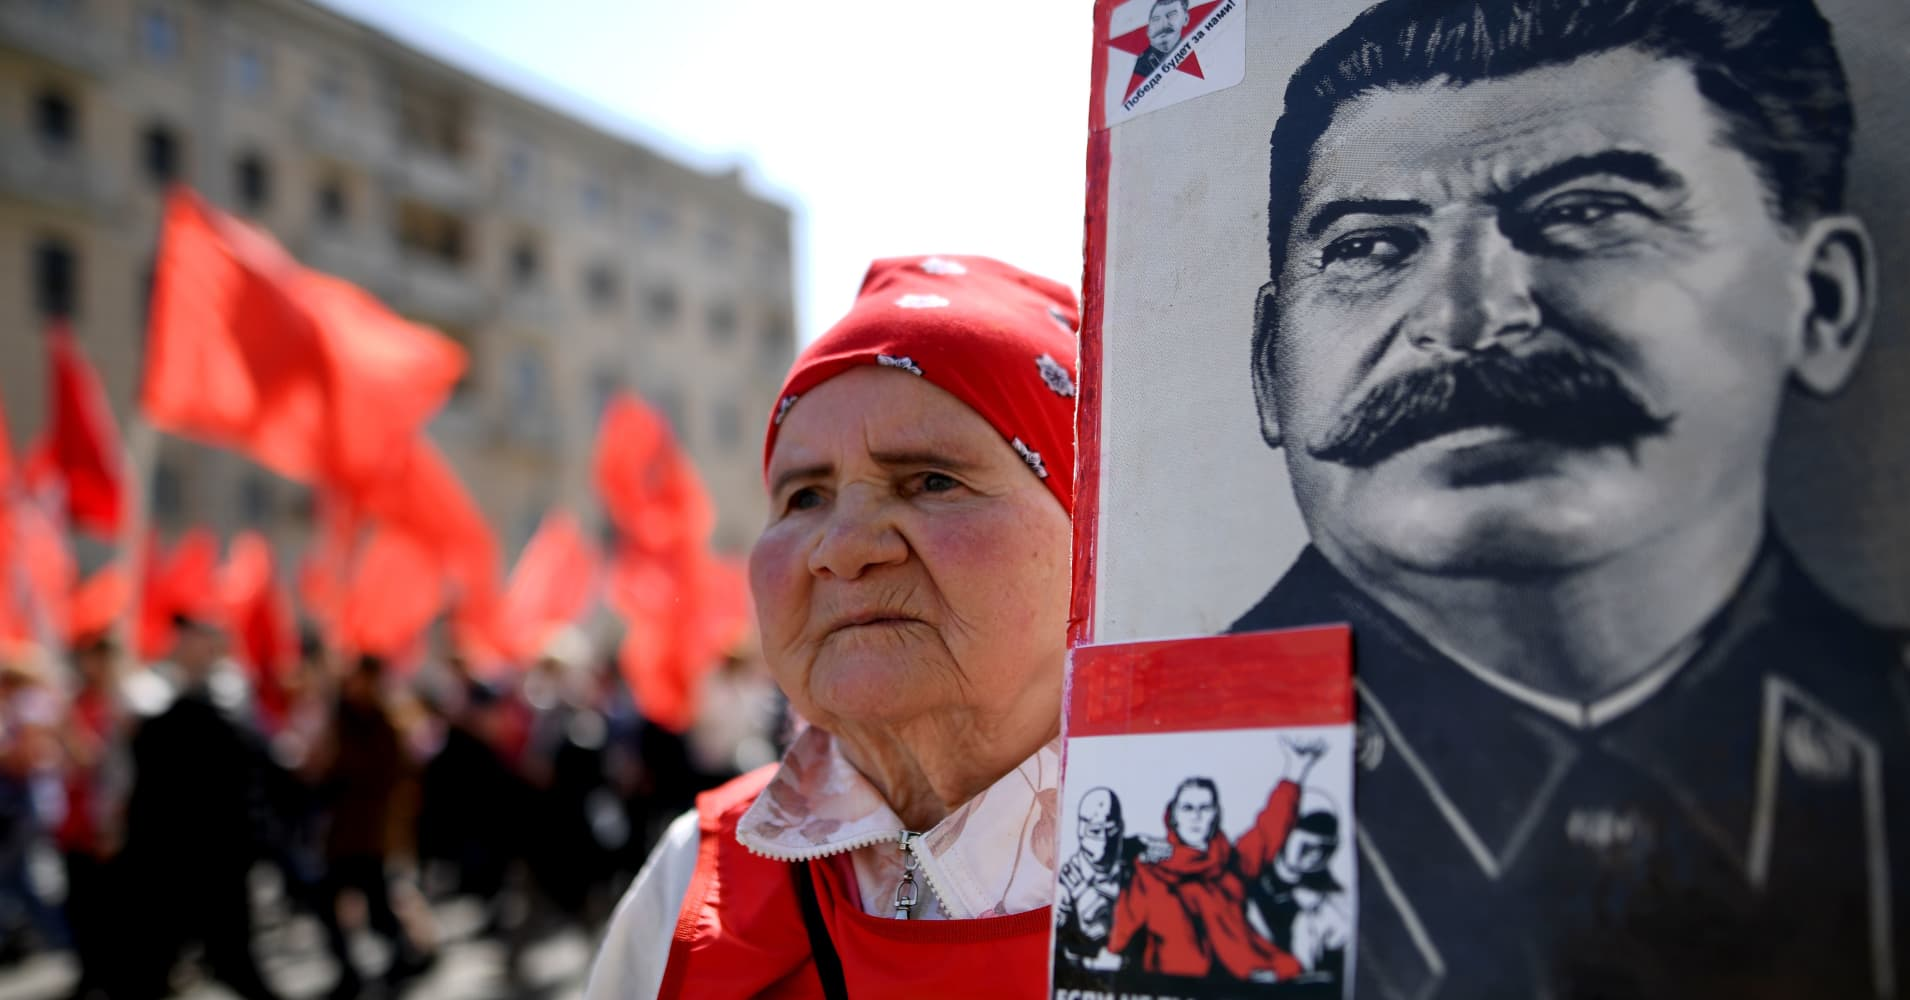 A Russian Communist party activist carries a banner with a portrait of late Soviet leader Joseph Stalin during a May Day rally in central Moscow on May 1, 2017.